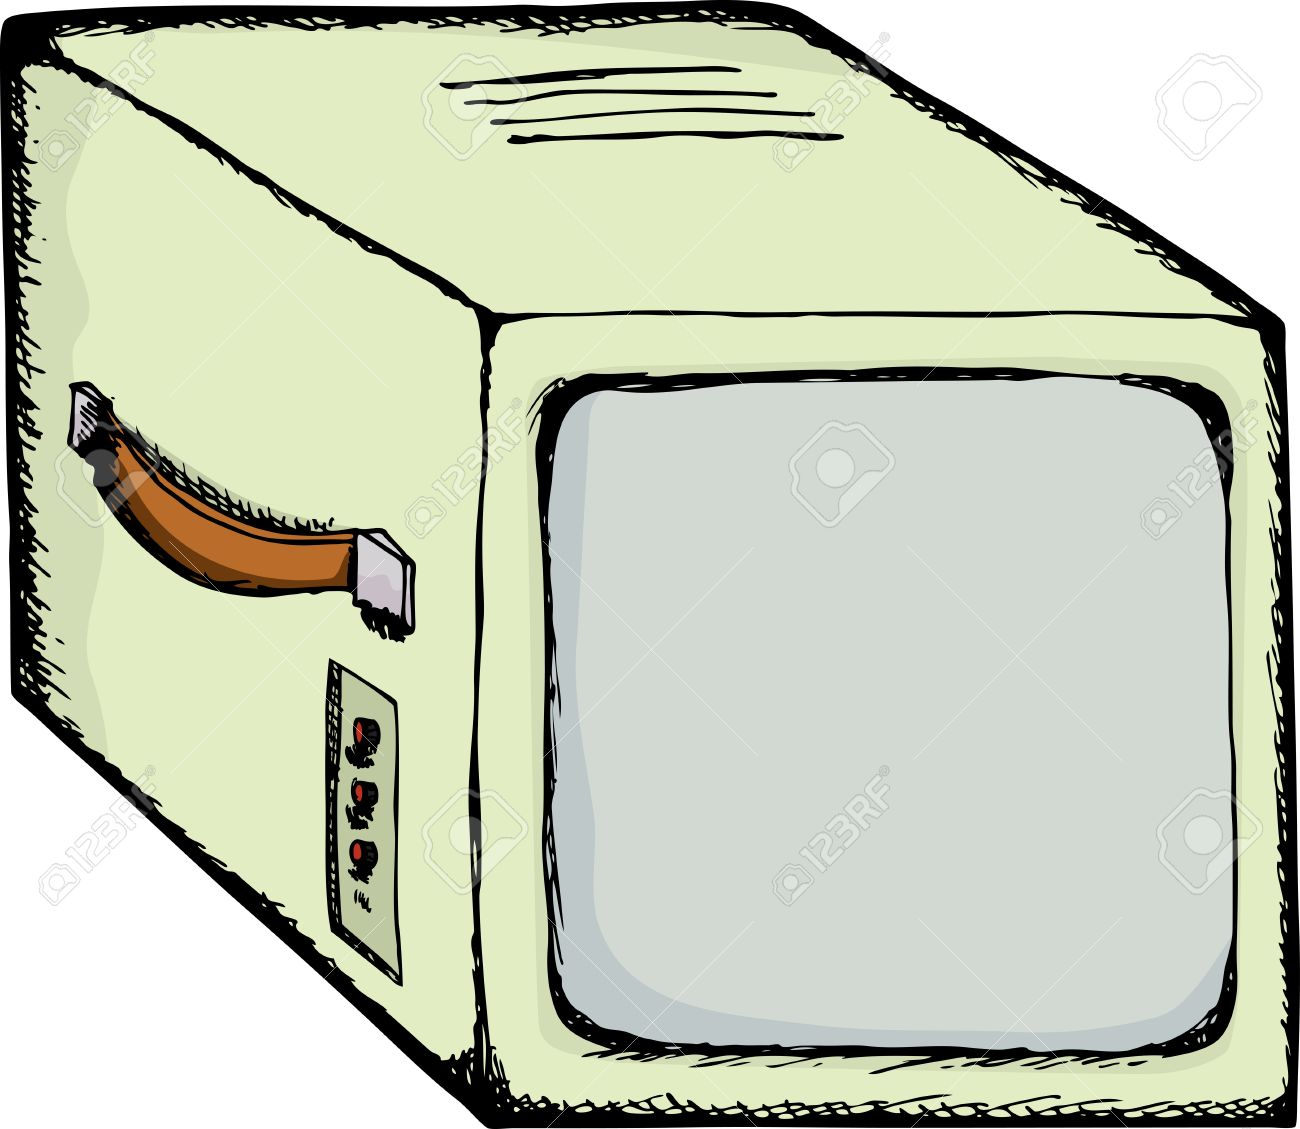 Drawing Of A Vintage Video Security Monitor With Carrying Handle.